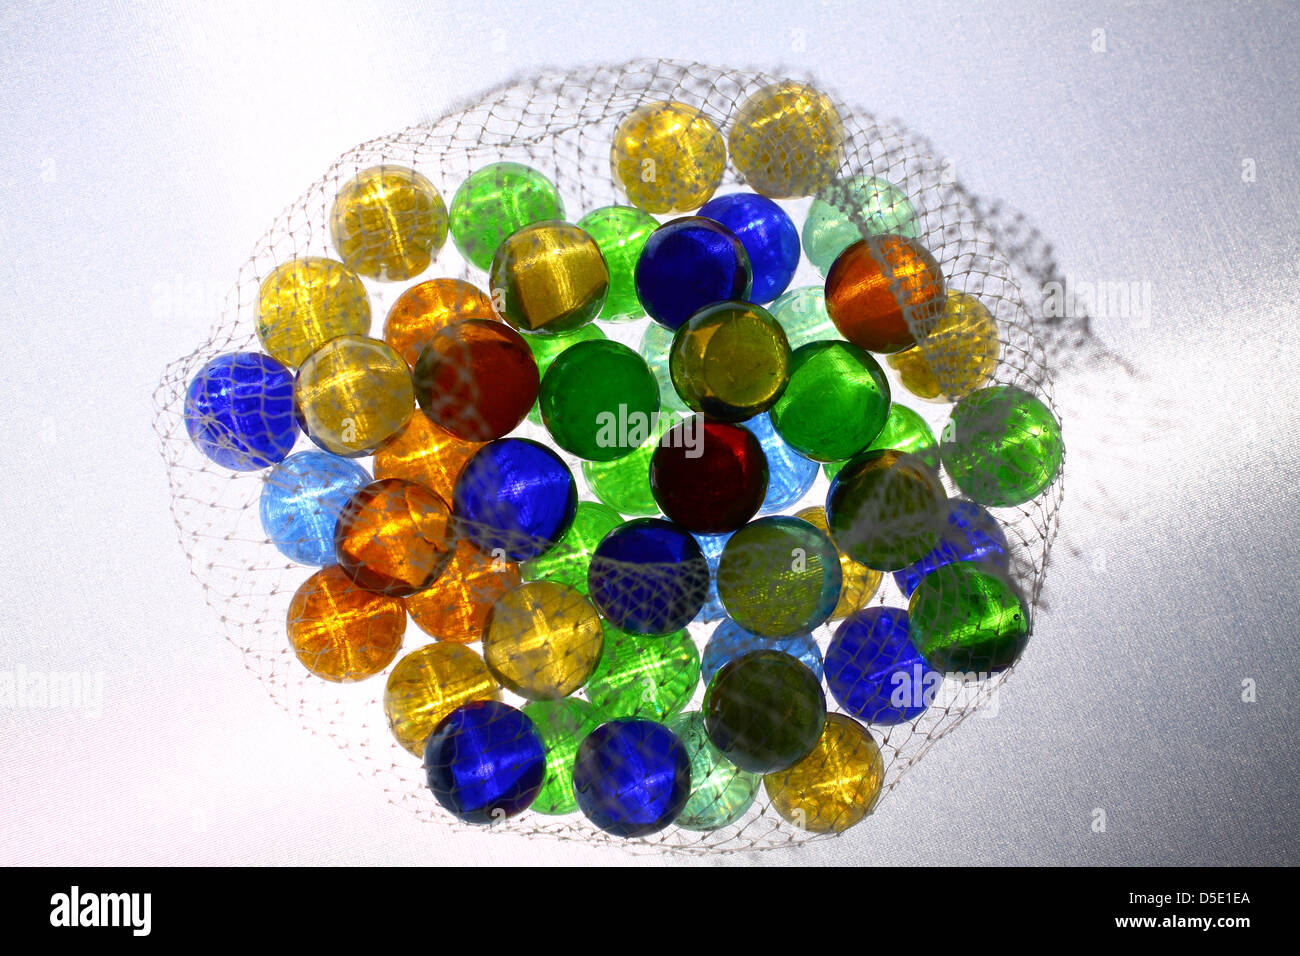 Marbles in net bag on white background - Stock Image